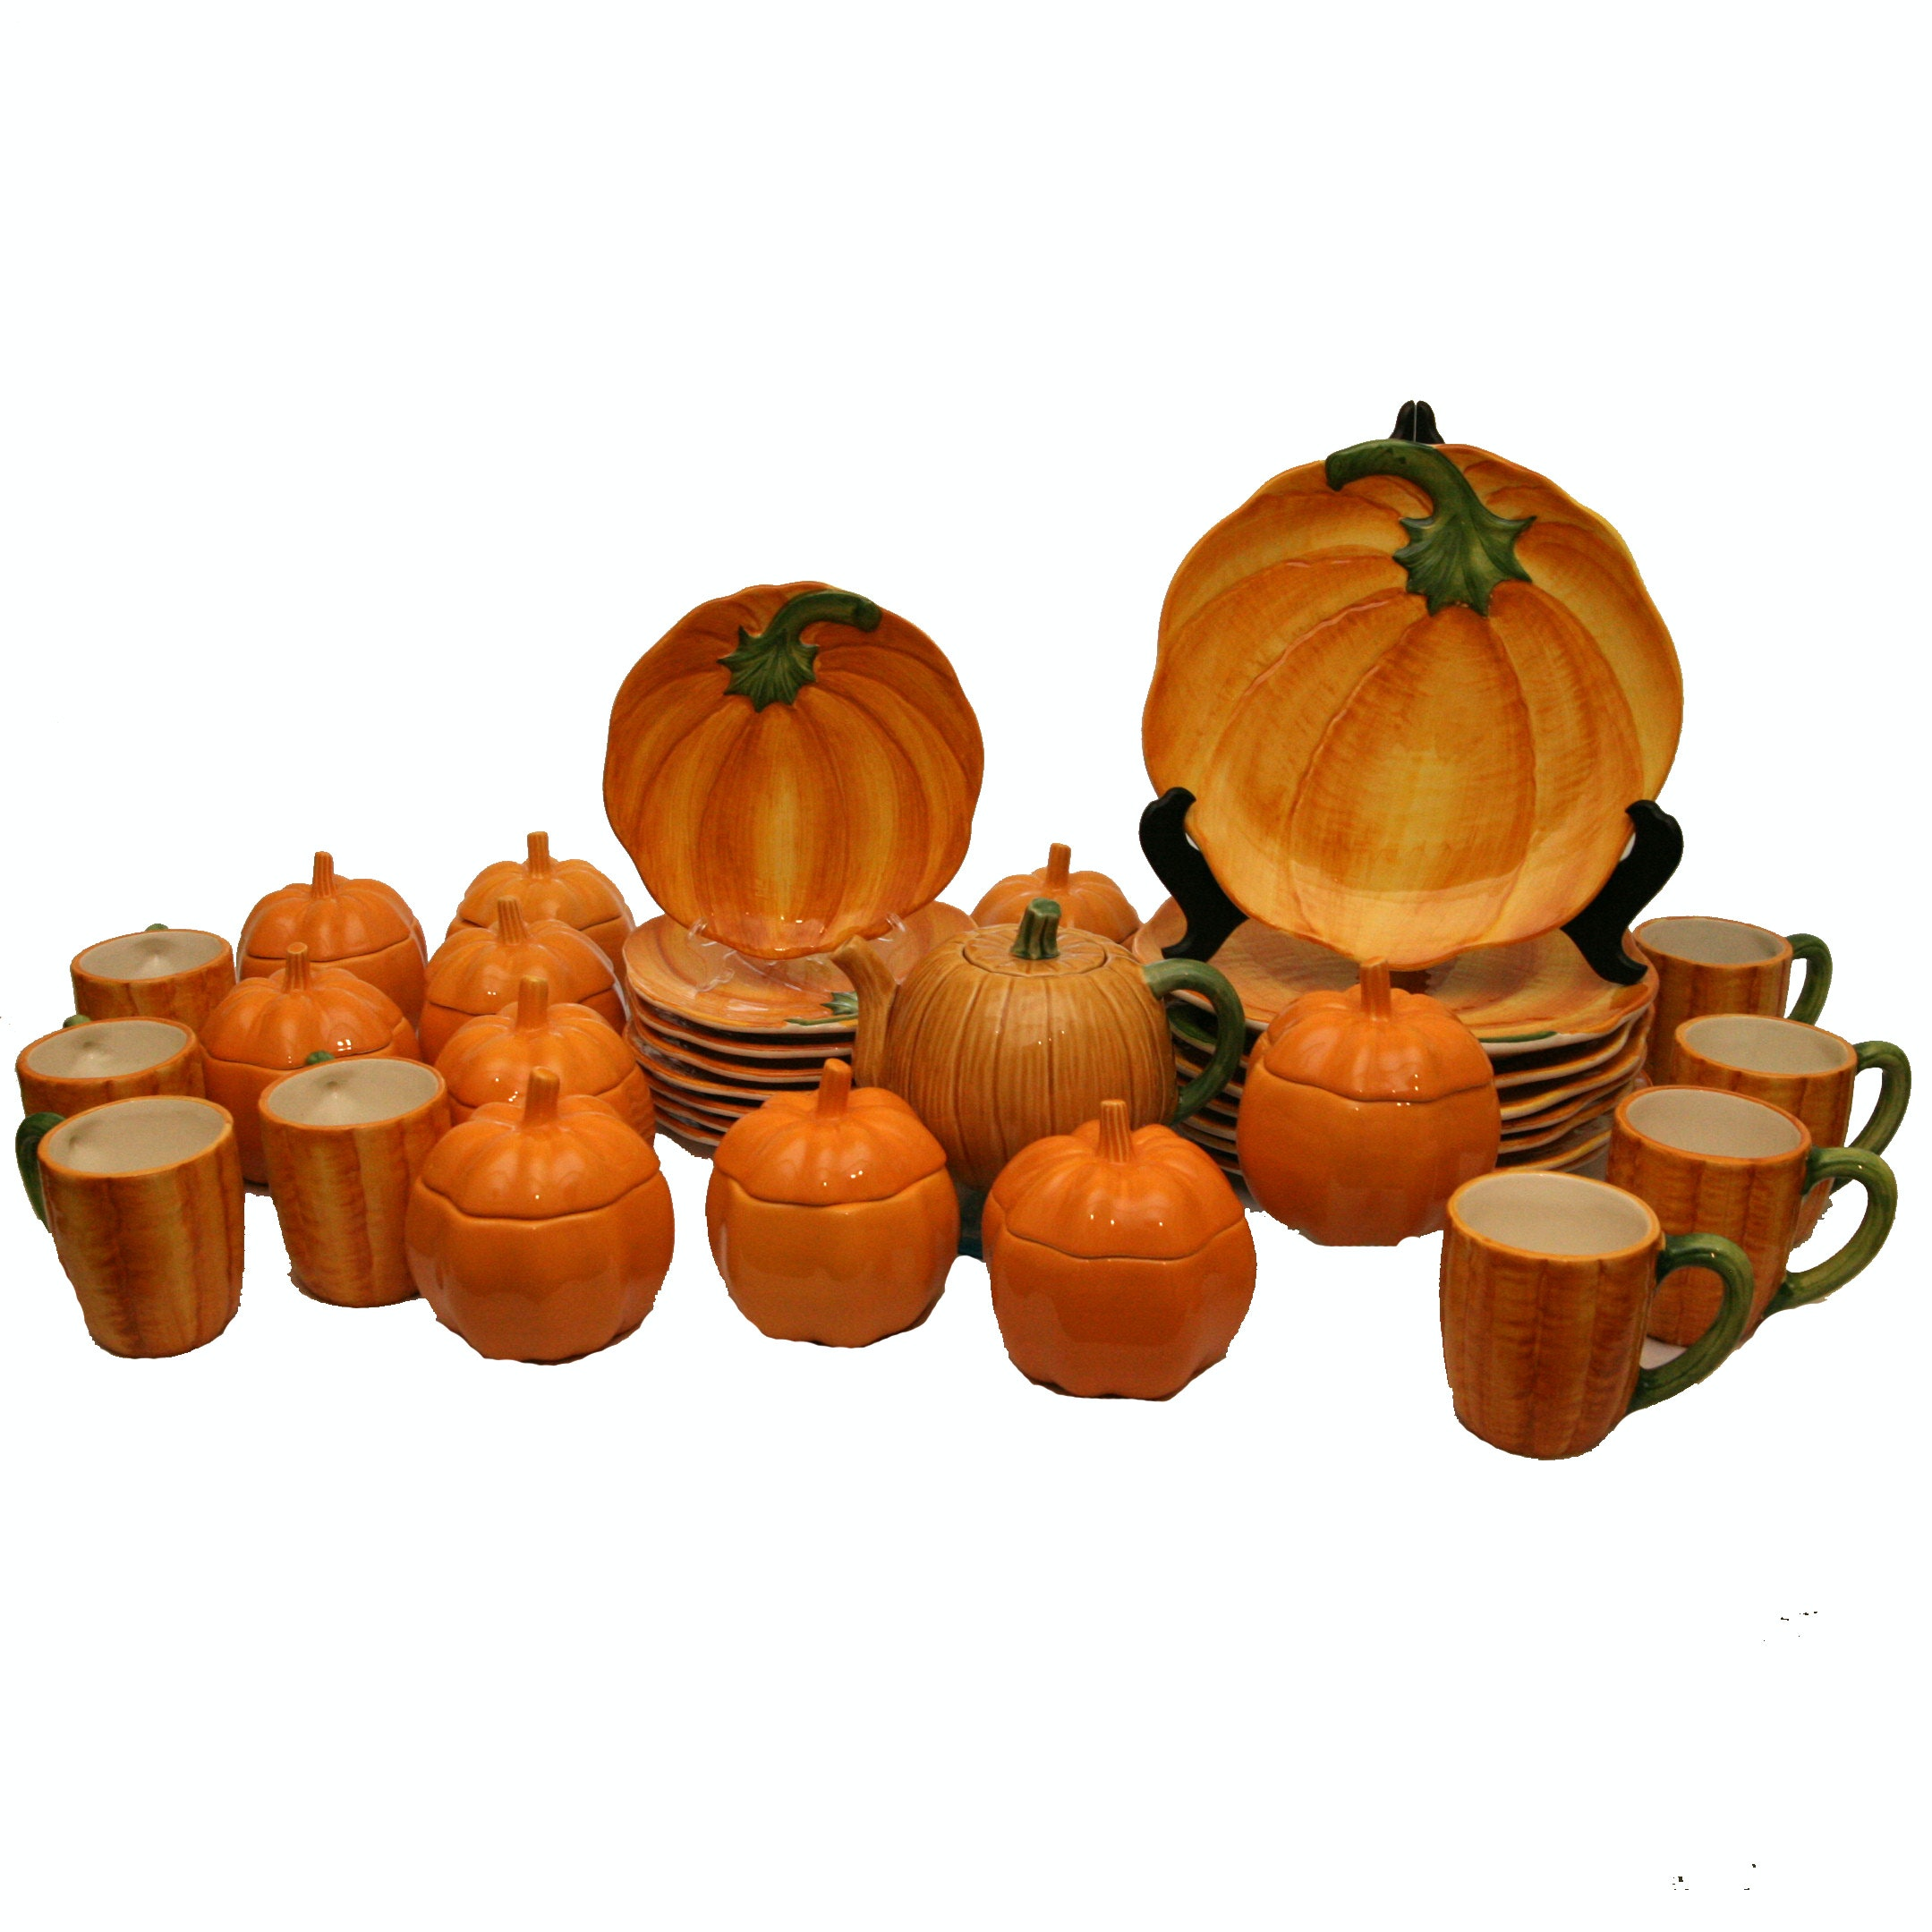 Bordallo Pinheiro and Italian Ceramic Pumpkin Motif Dinnerware